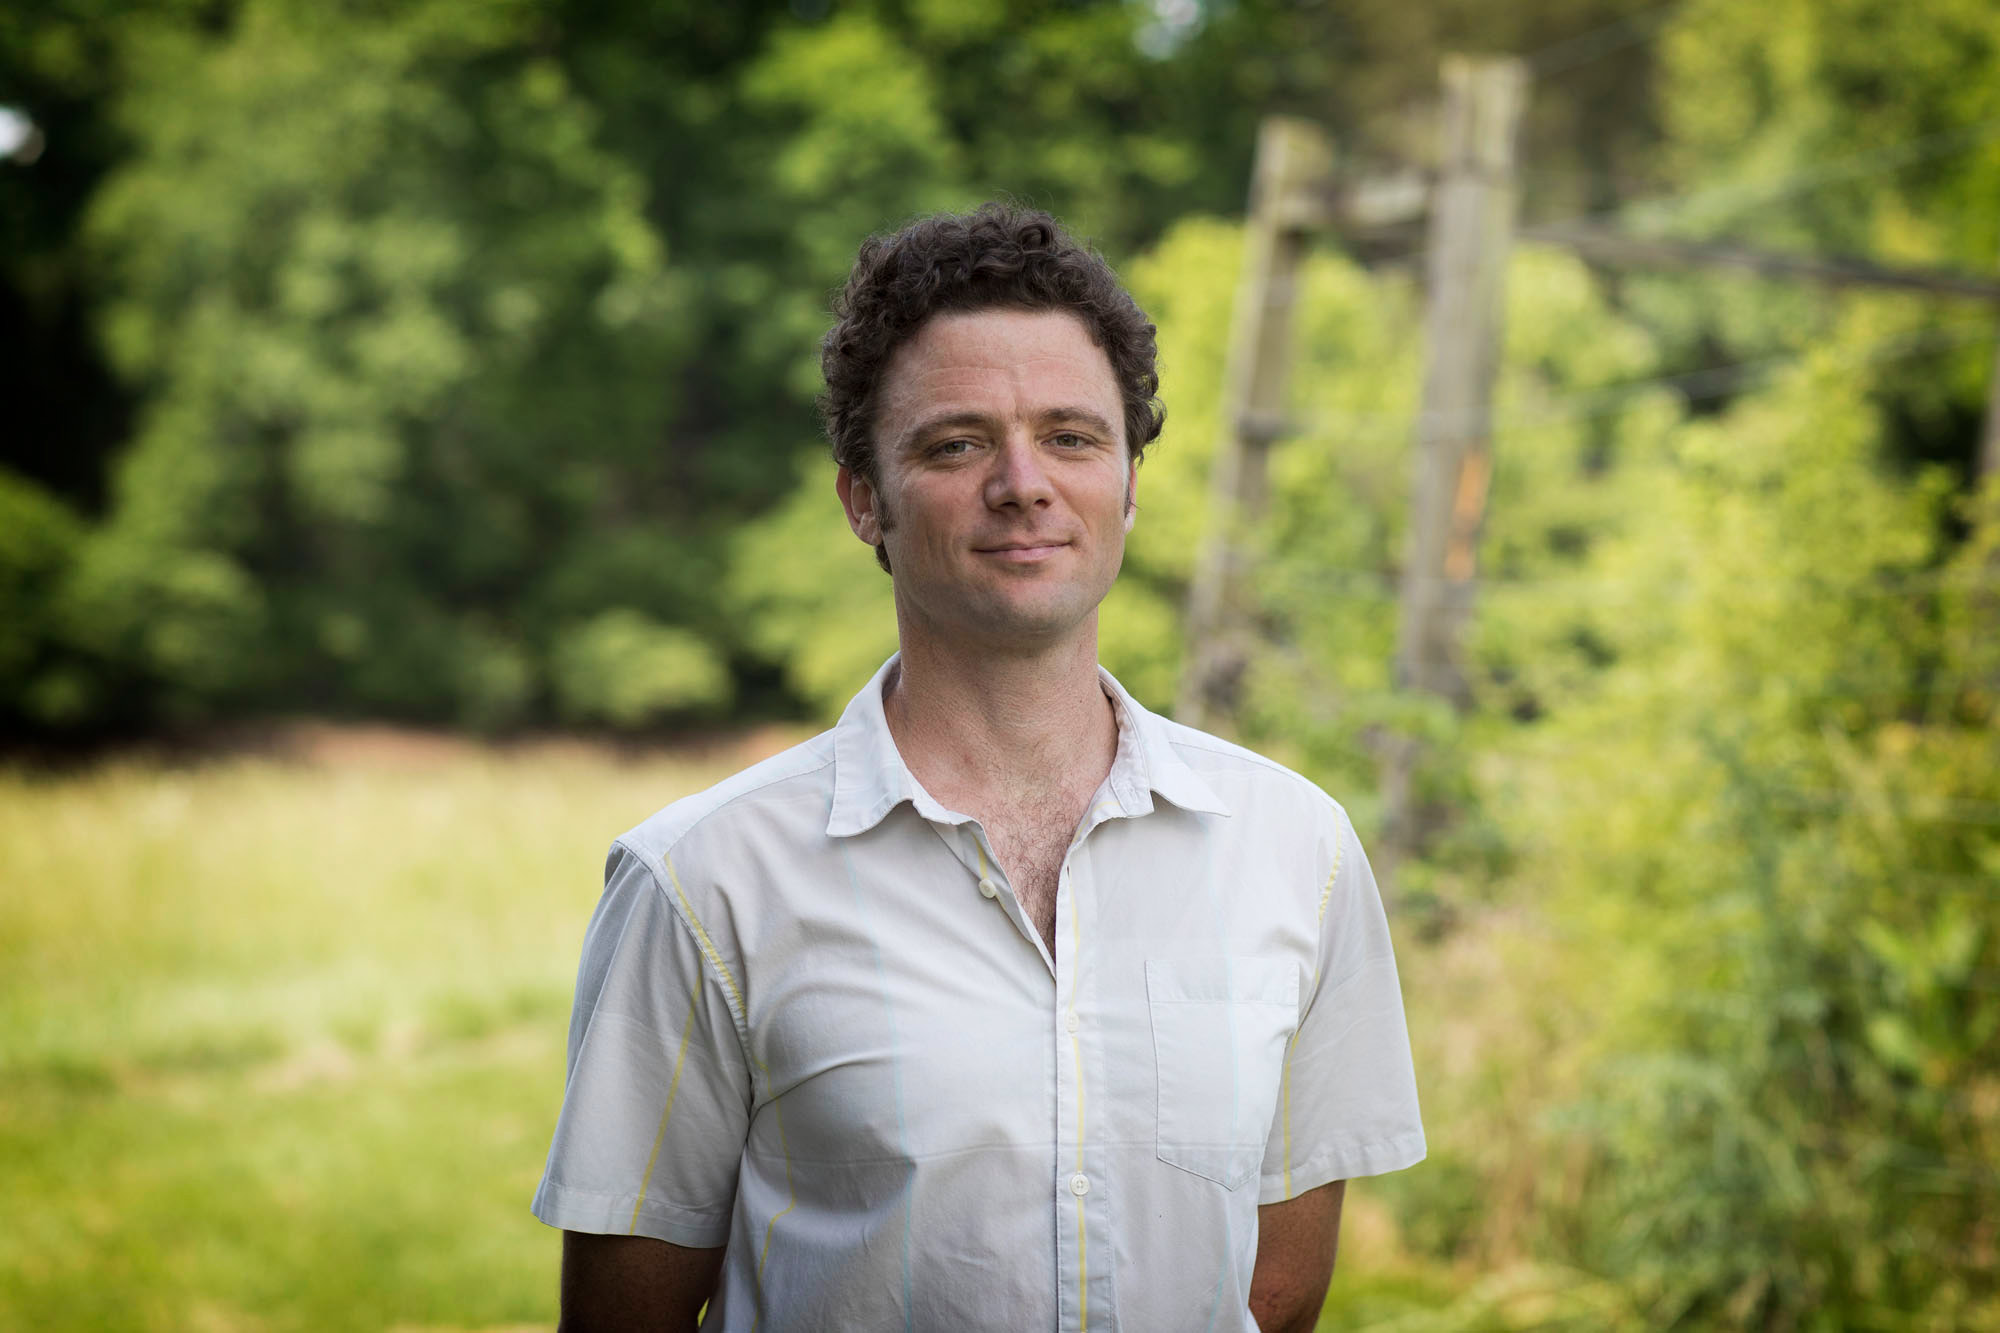 UVA biologist Alan Bergland studies rapidly reproducing insects to gain insights into how species adapt to their environments over generations.